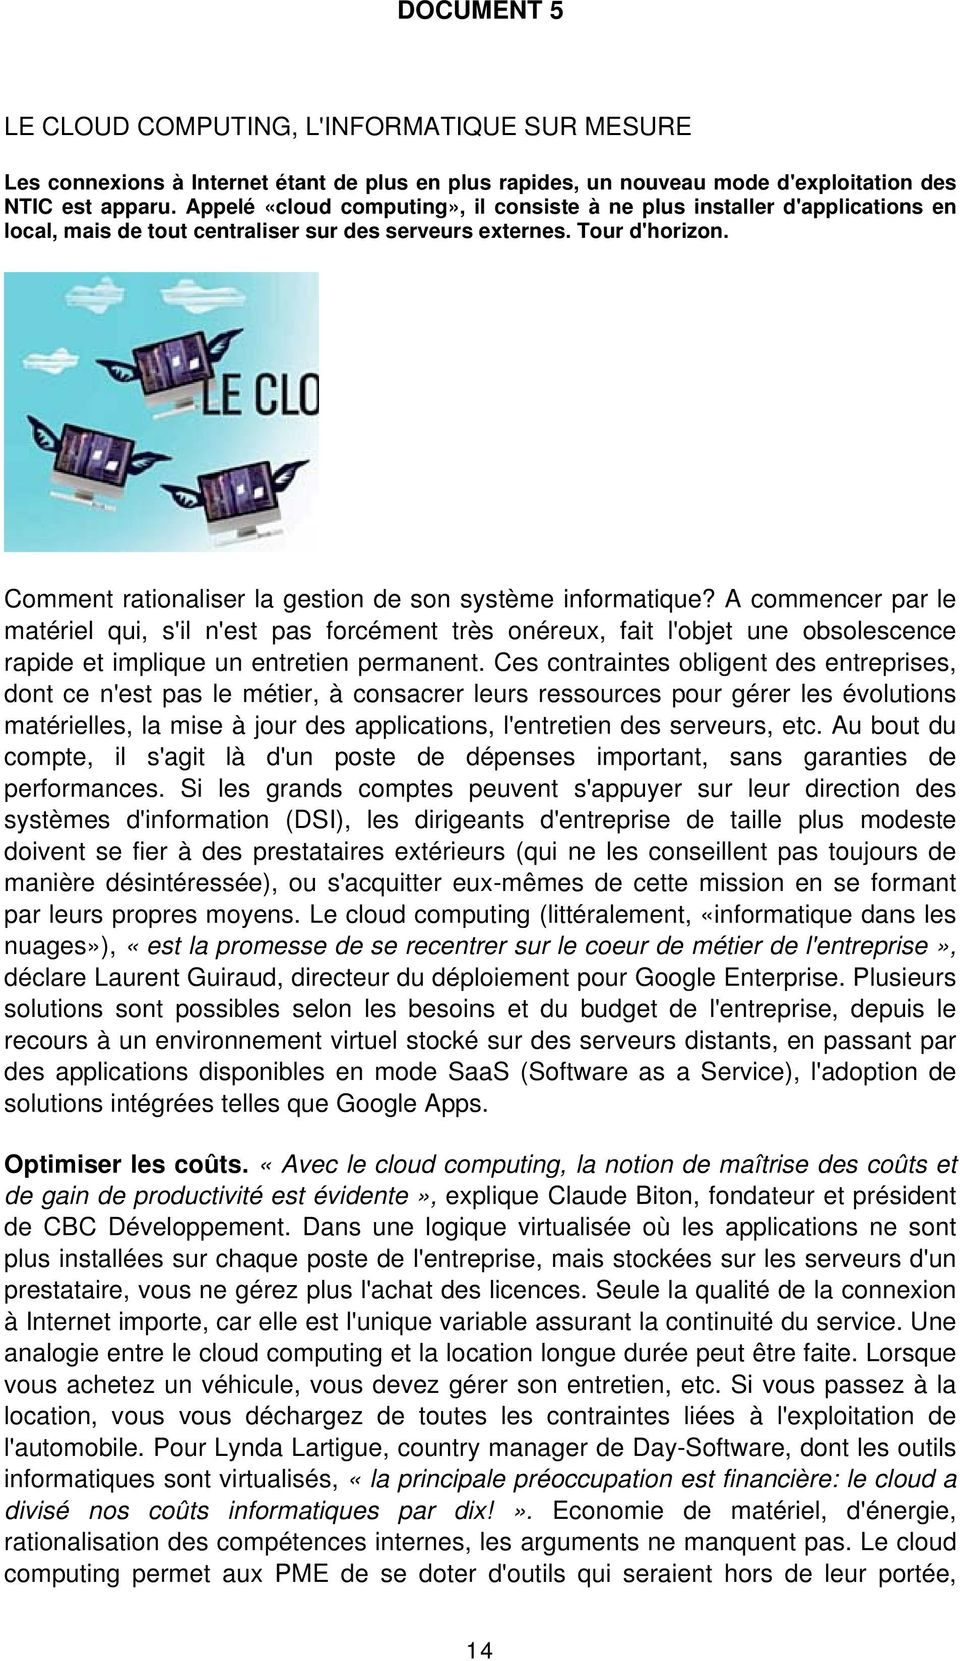 Comment rationaliser la gestion de son système informatique?